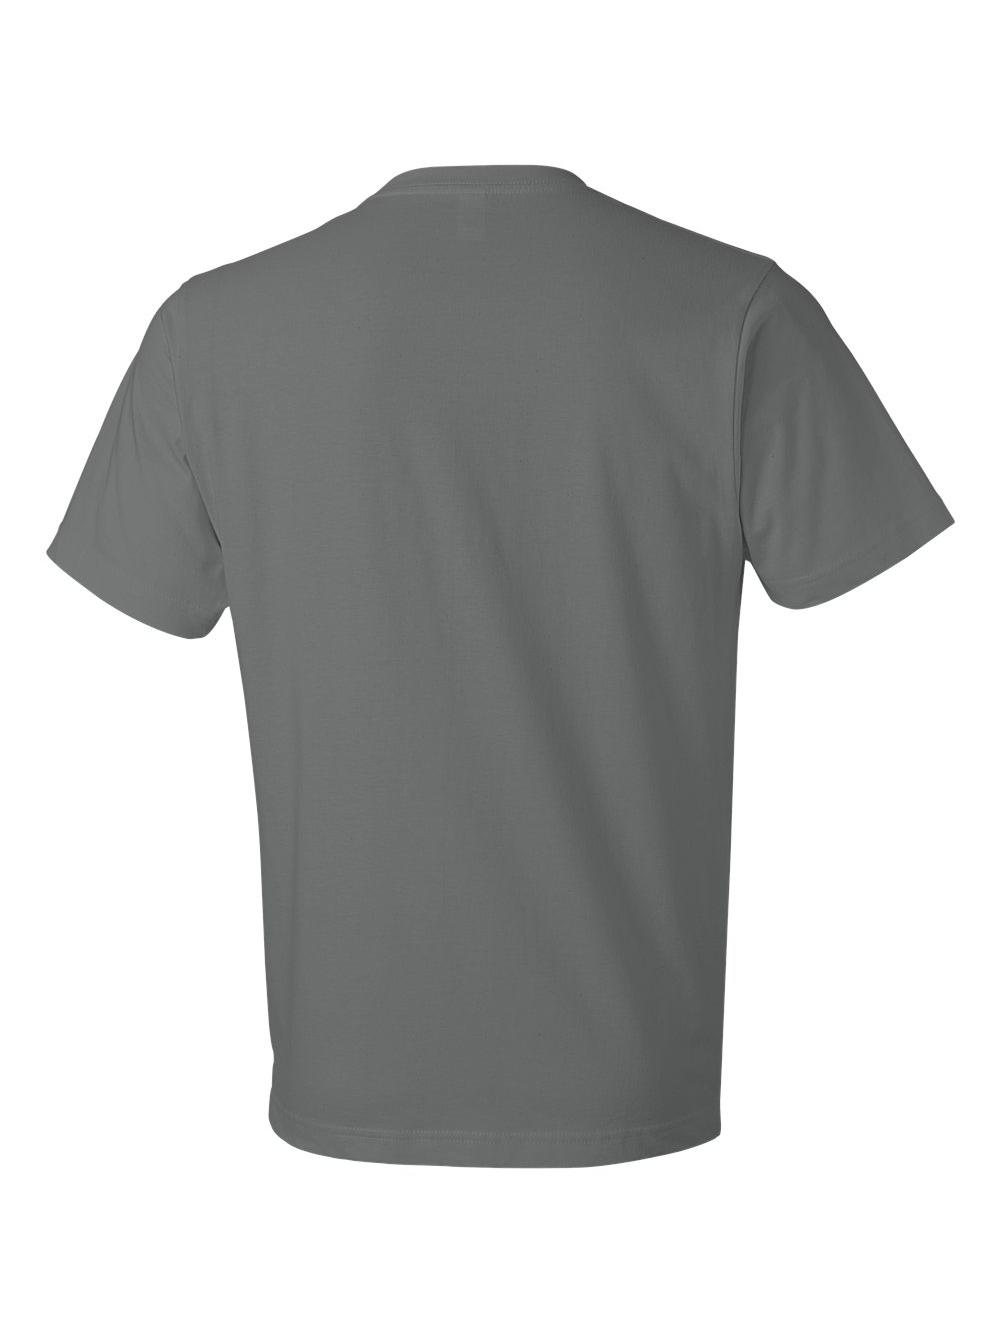 Anvil-Lightweight-Fashion-Short-Sleeve-T-Shirt-980 thumbnail 145